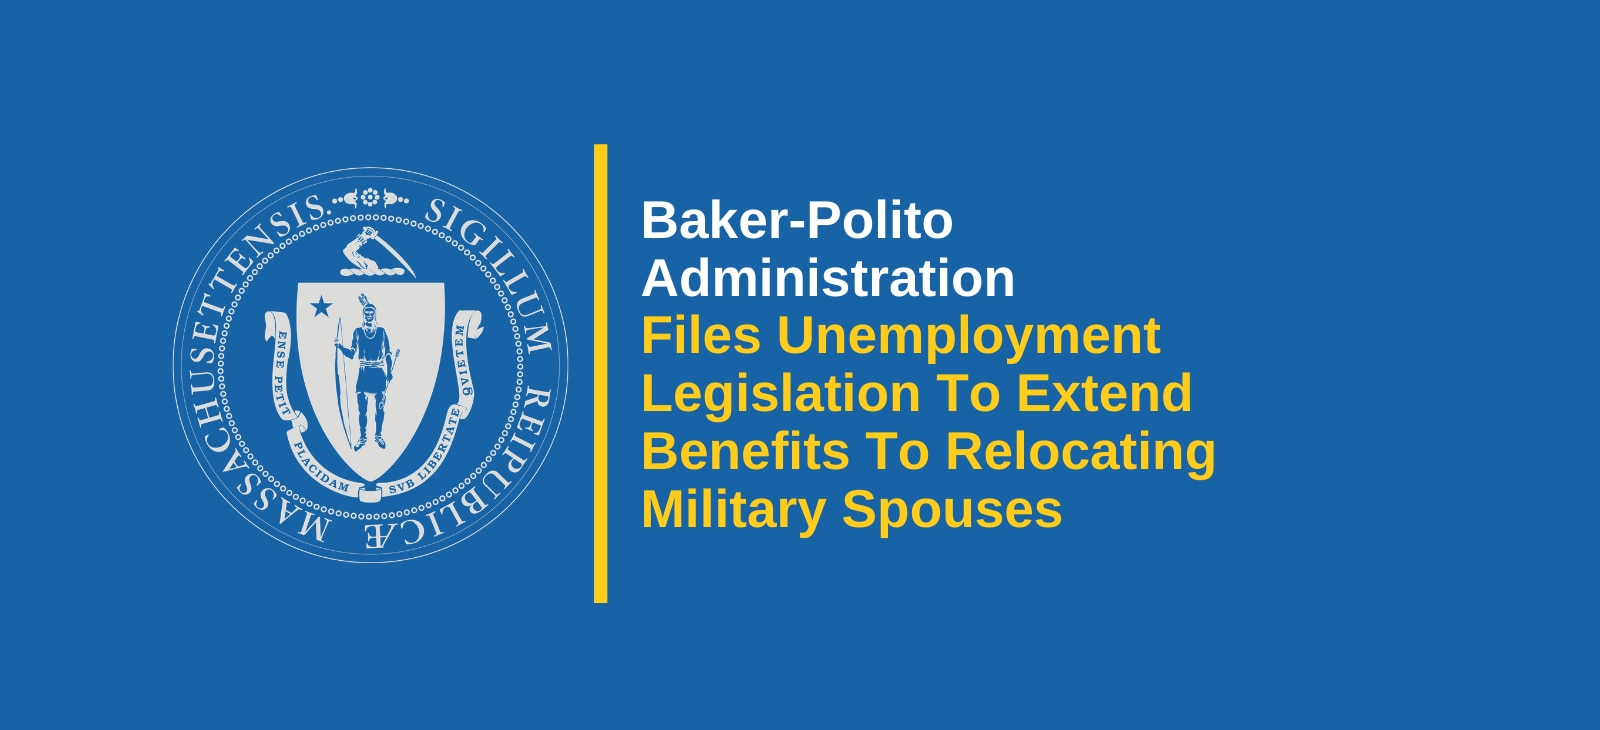 Baker-Polito Administration Files Unemployment Legislation To Extend Benefits To Relocating Military Spouses